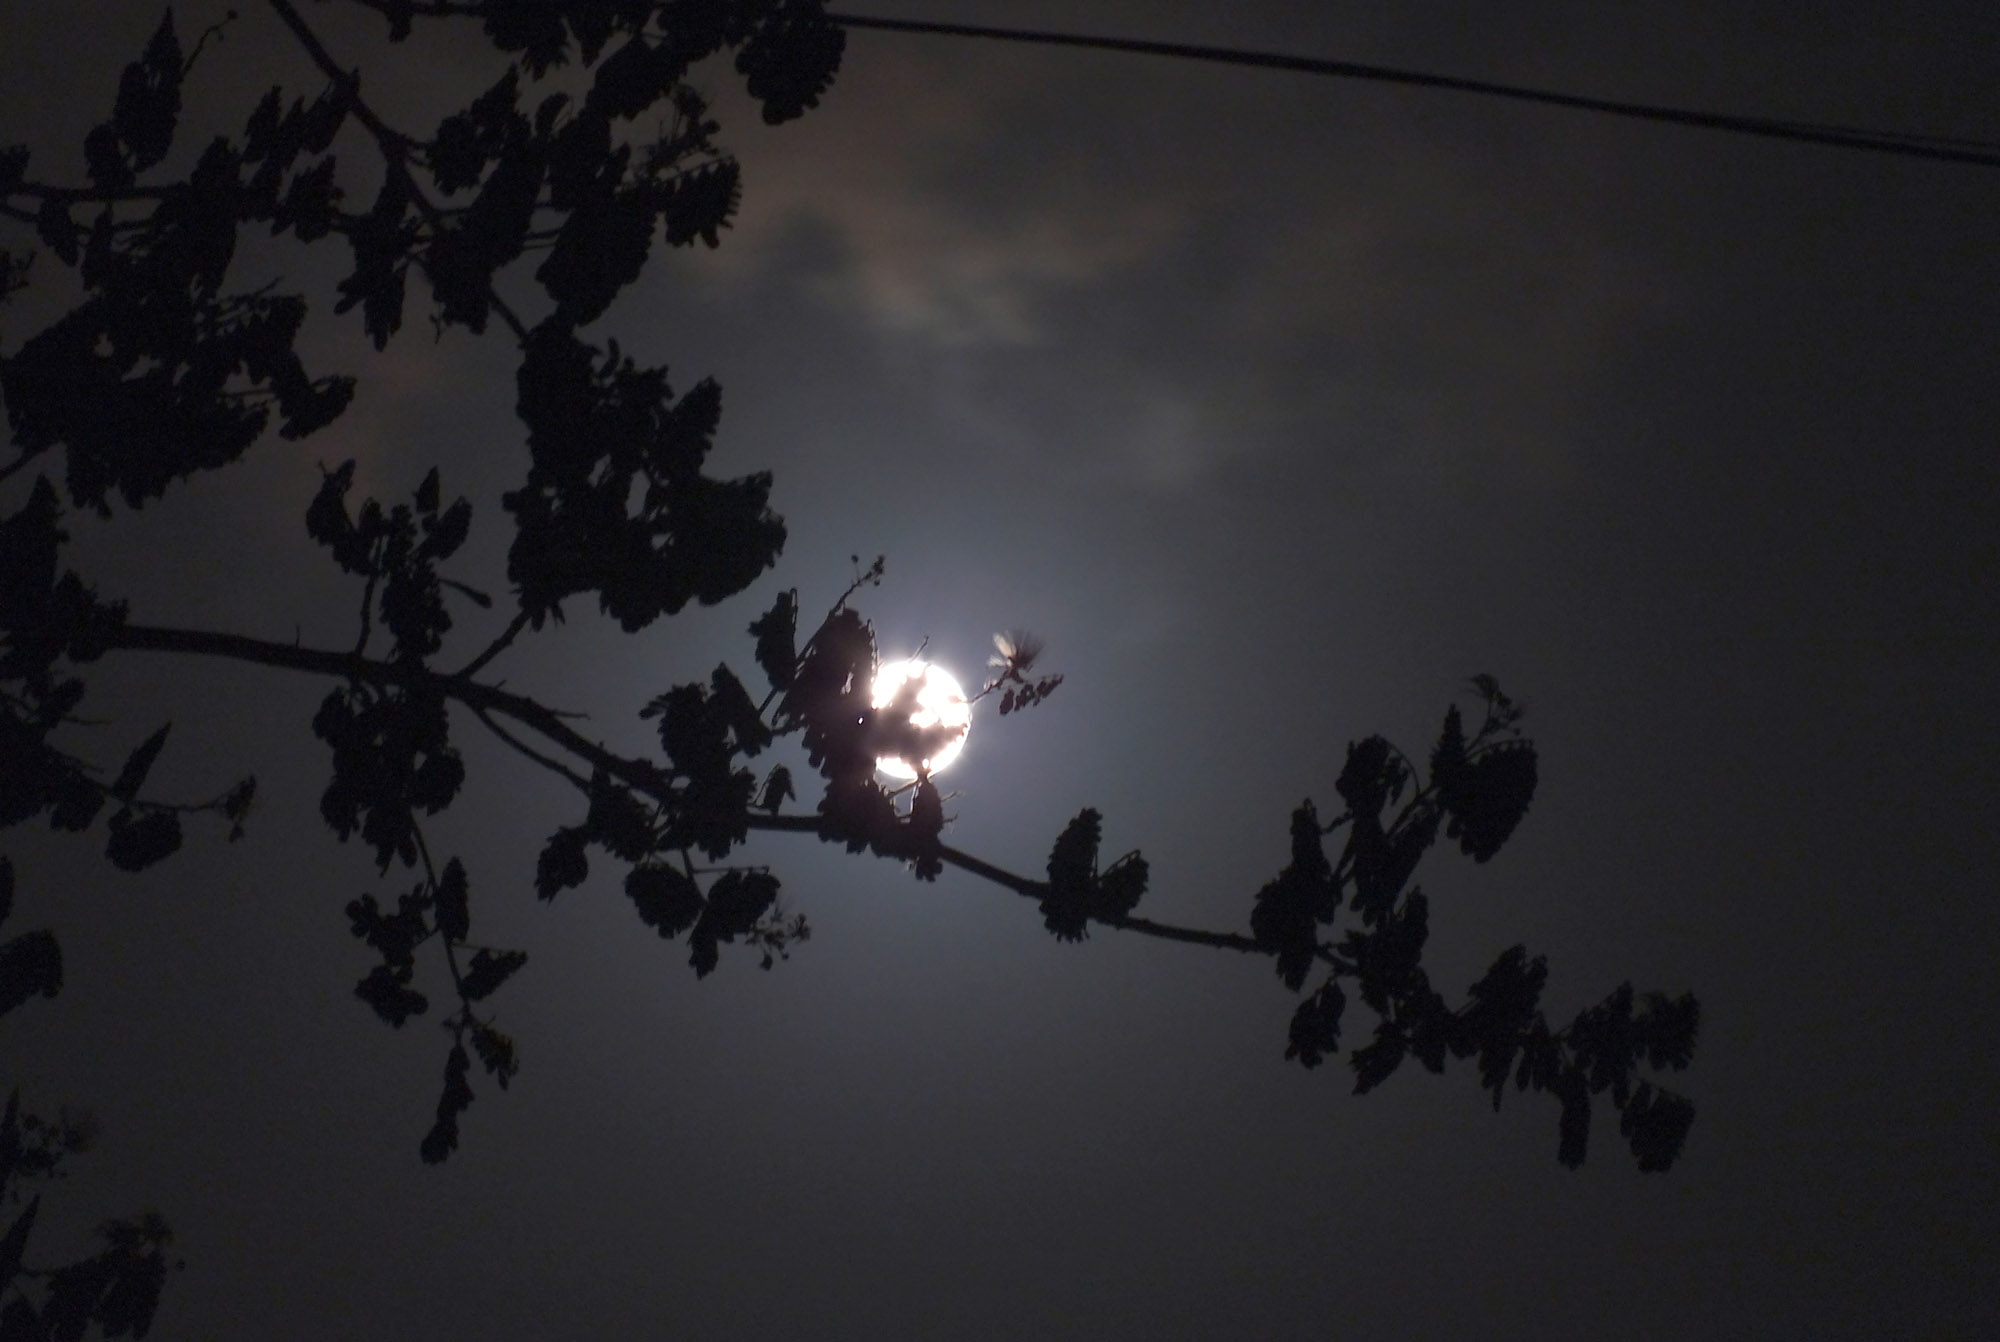 Supermoon 2012 Over Mumbai: Jatin Raval